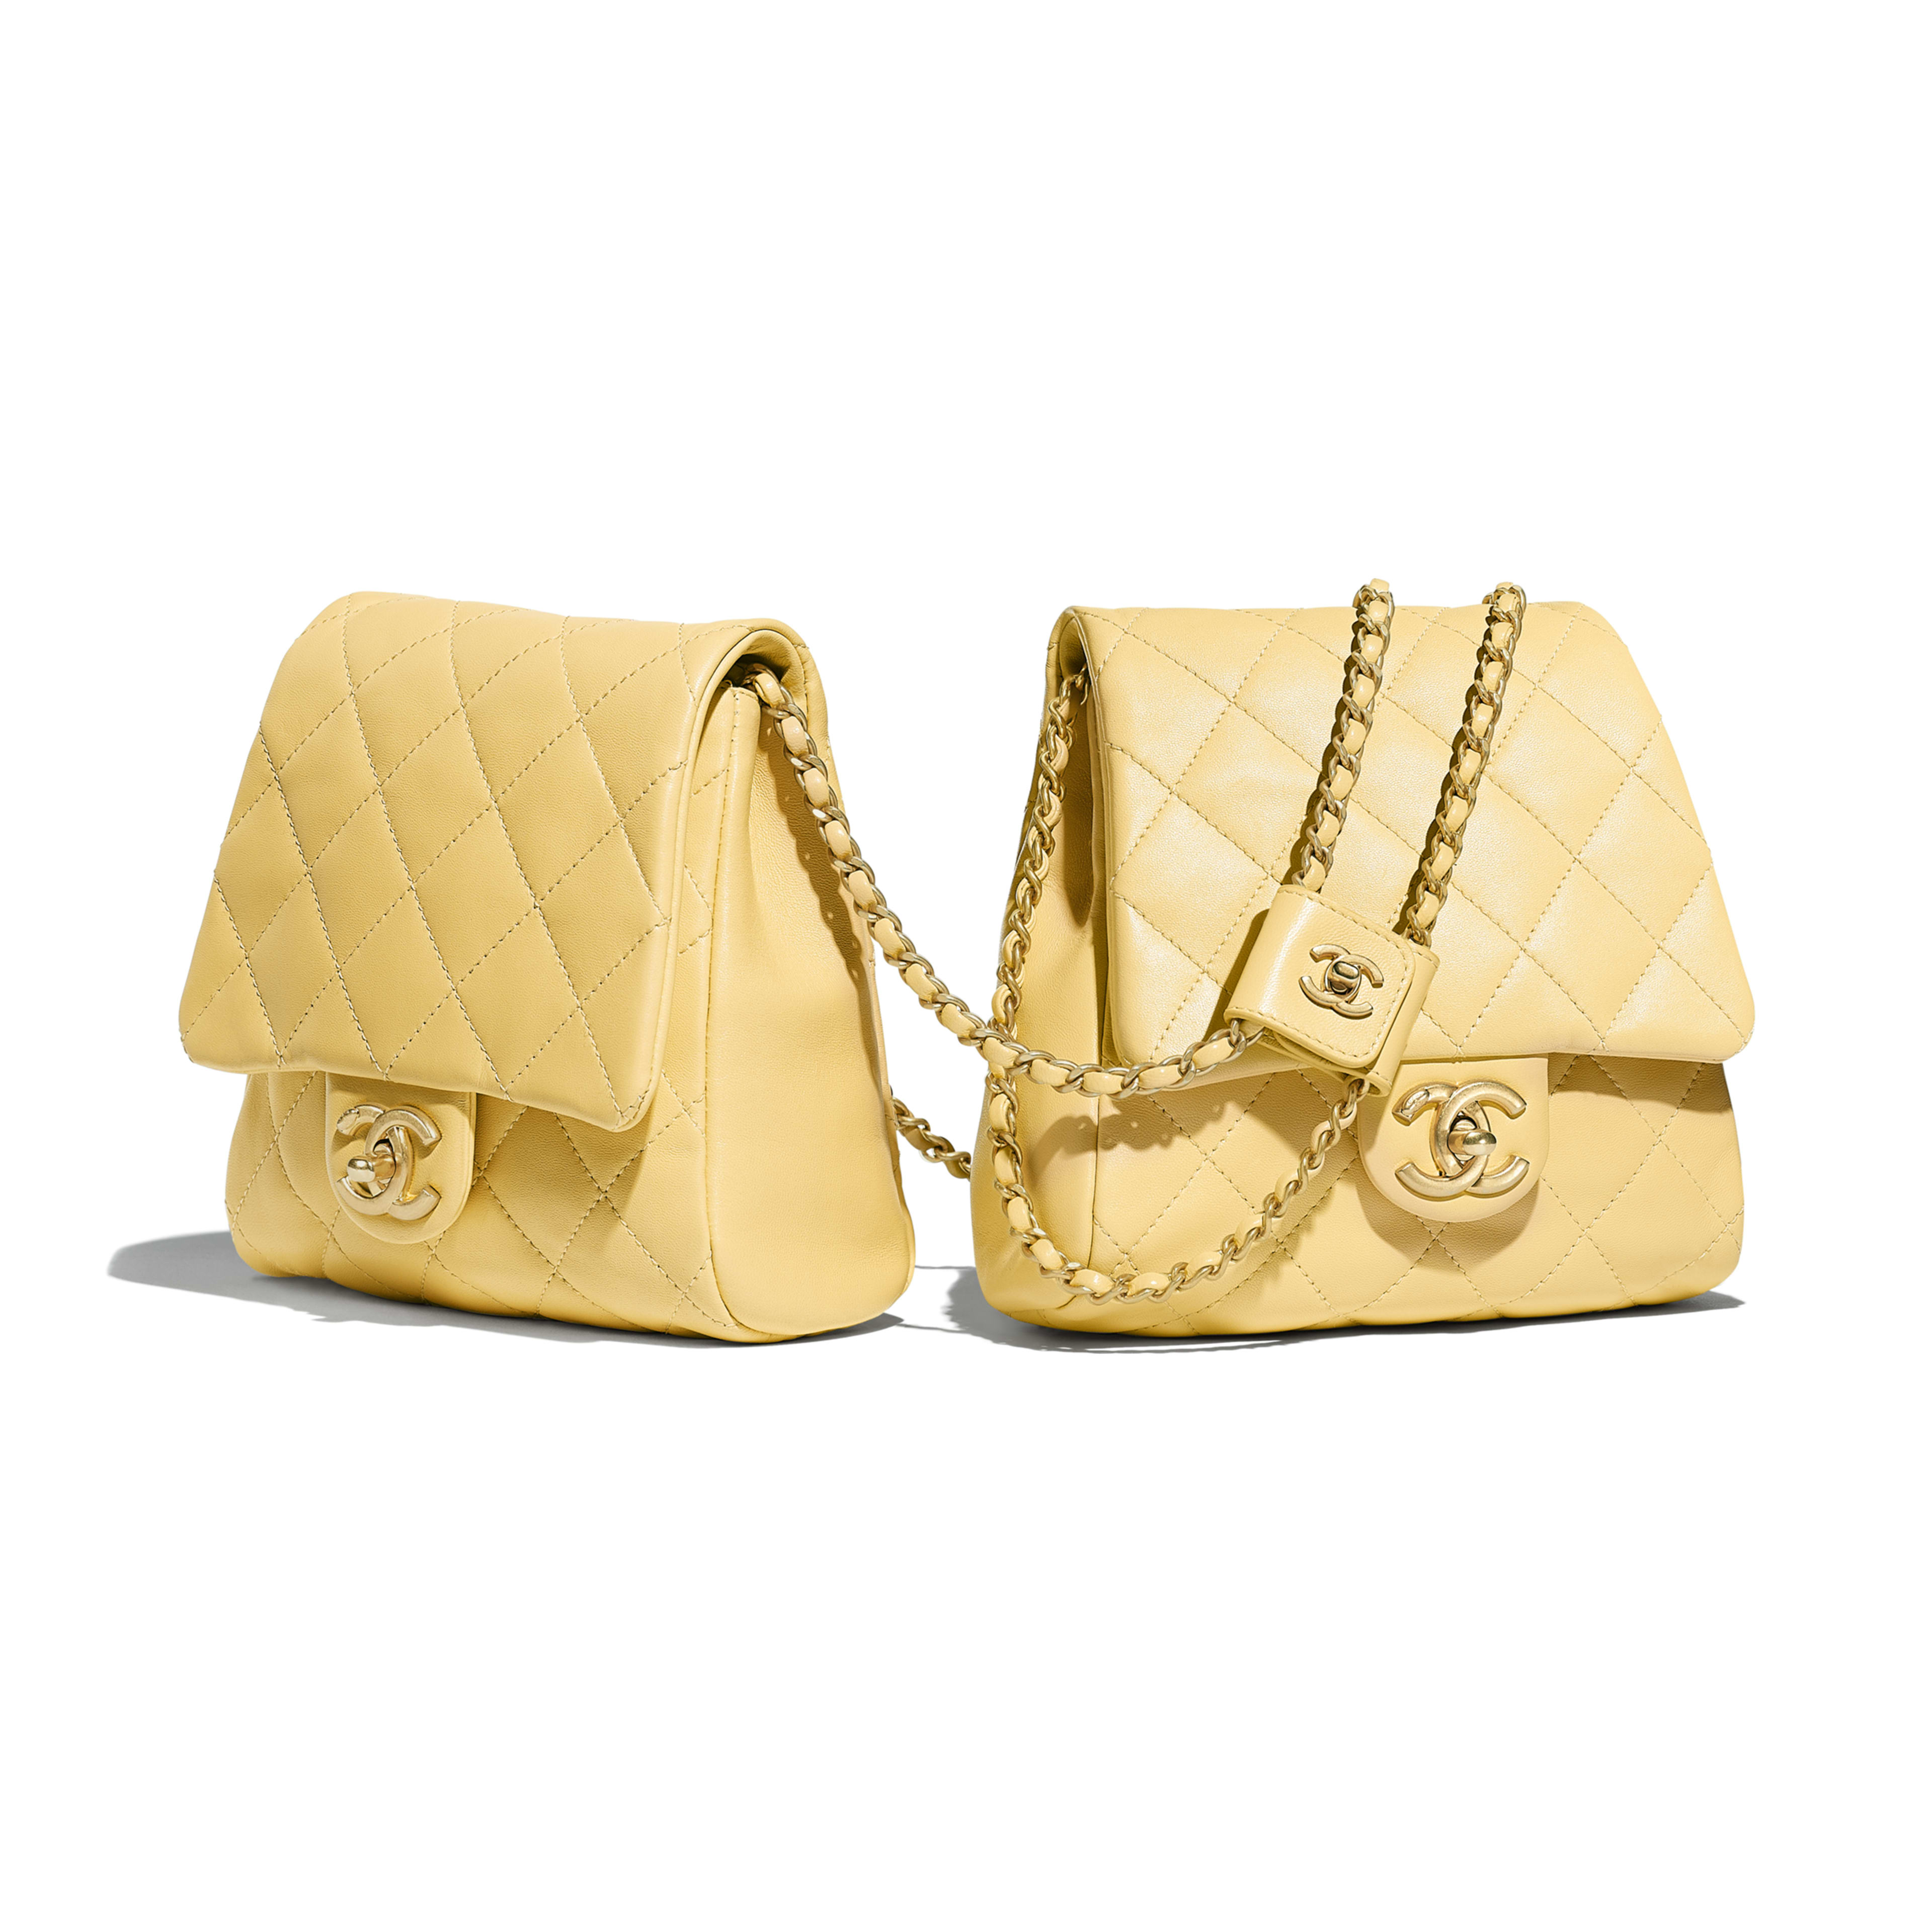 Side-Packs - Yellow - Lambskin & Gold-Tone Metal - Alternative view - see full sized version